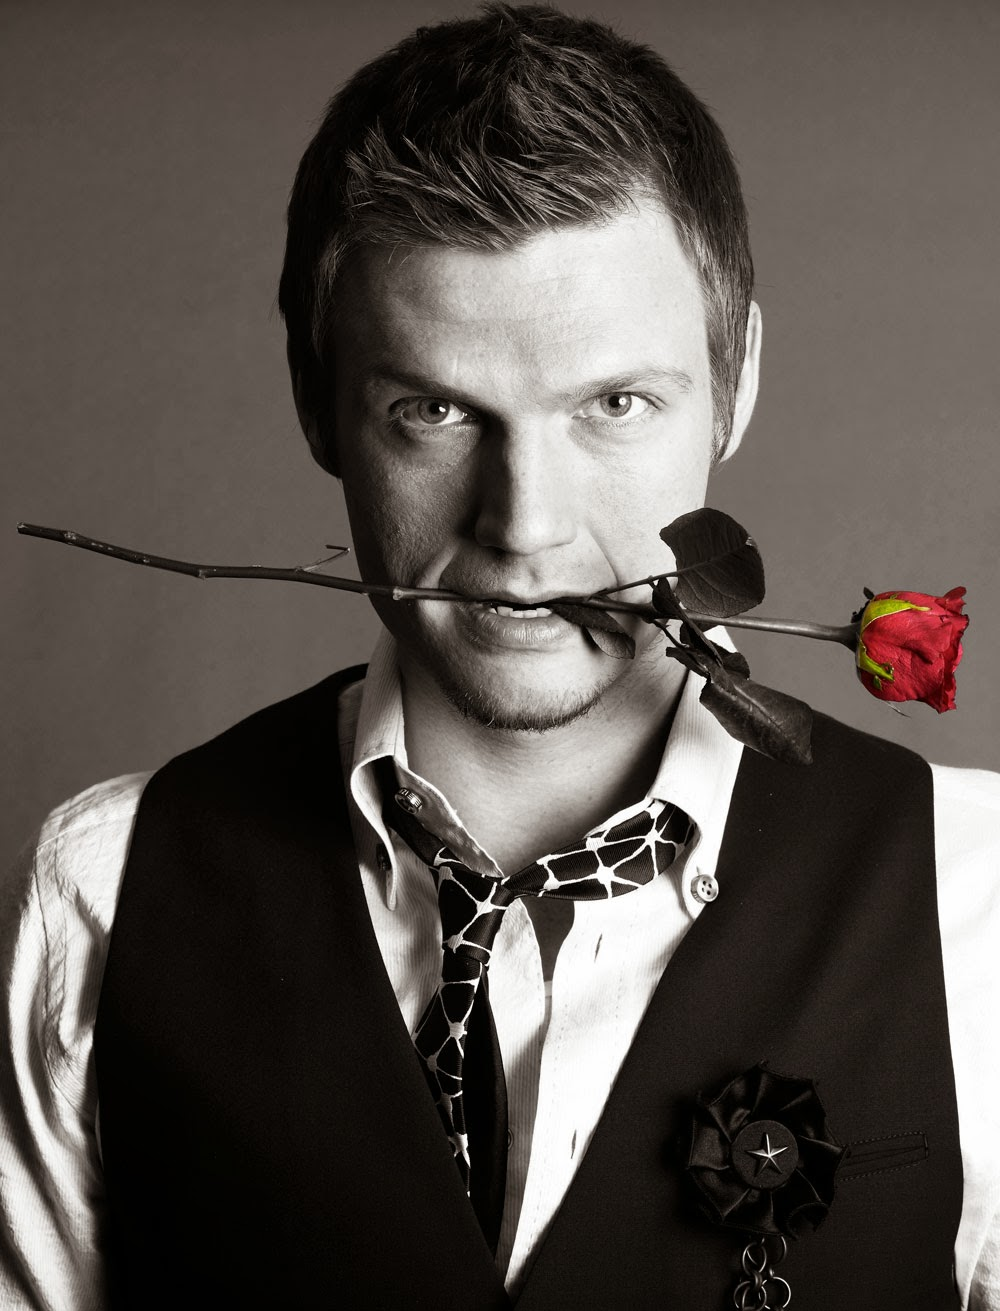 Nick Carter Bachstreet Boy Images